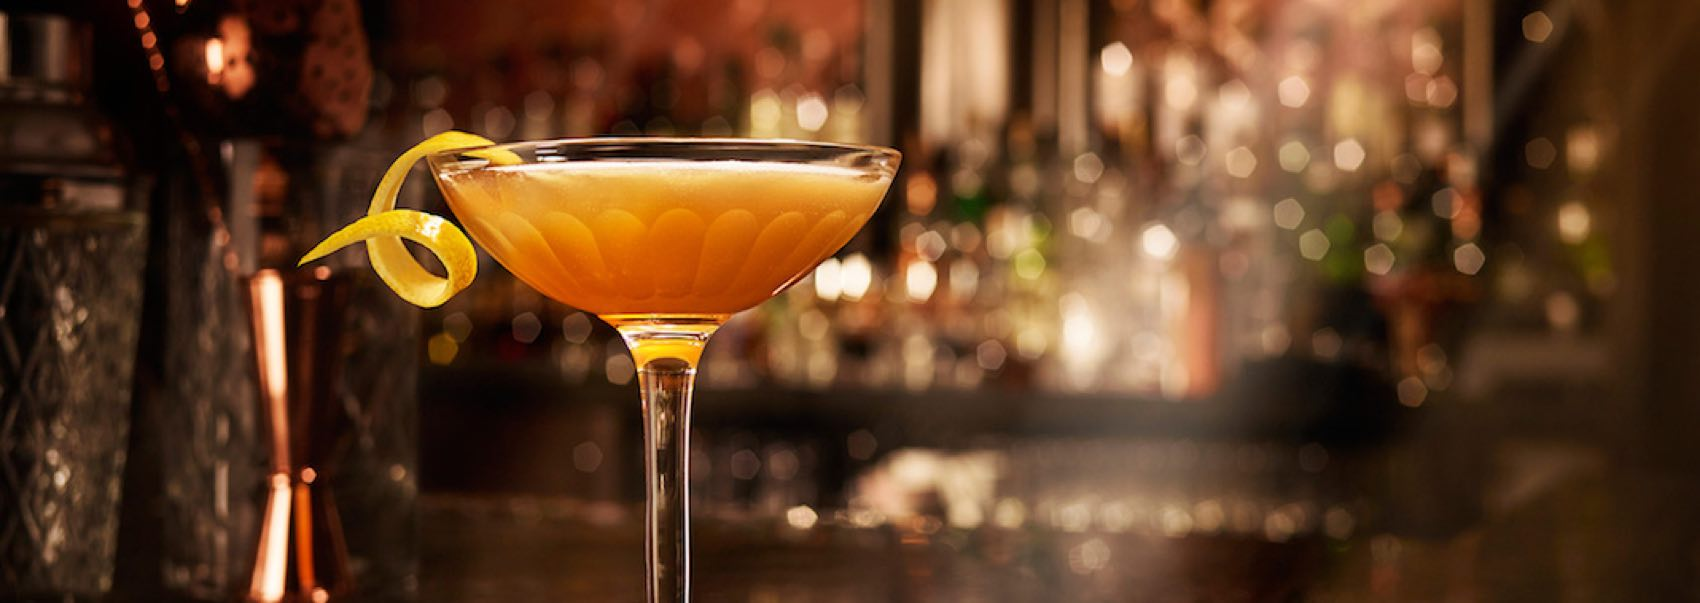 Sidecar: This sweet, shining cocktail was born in Paris